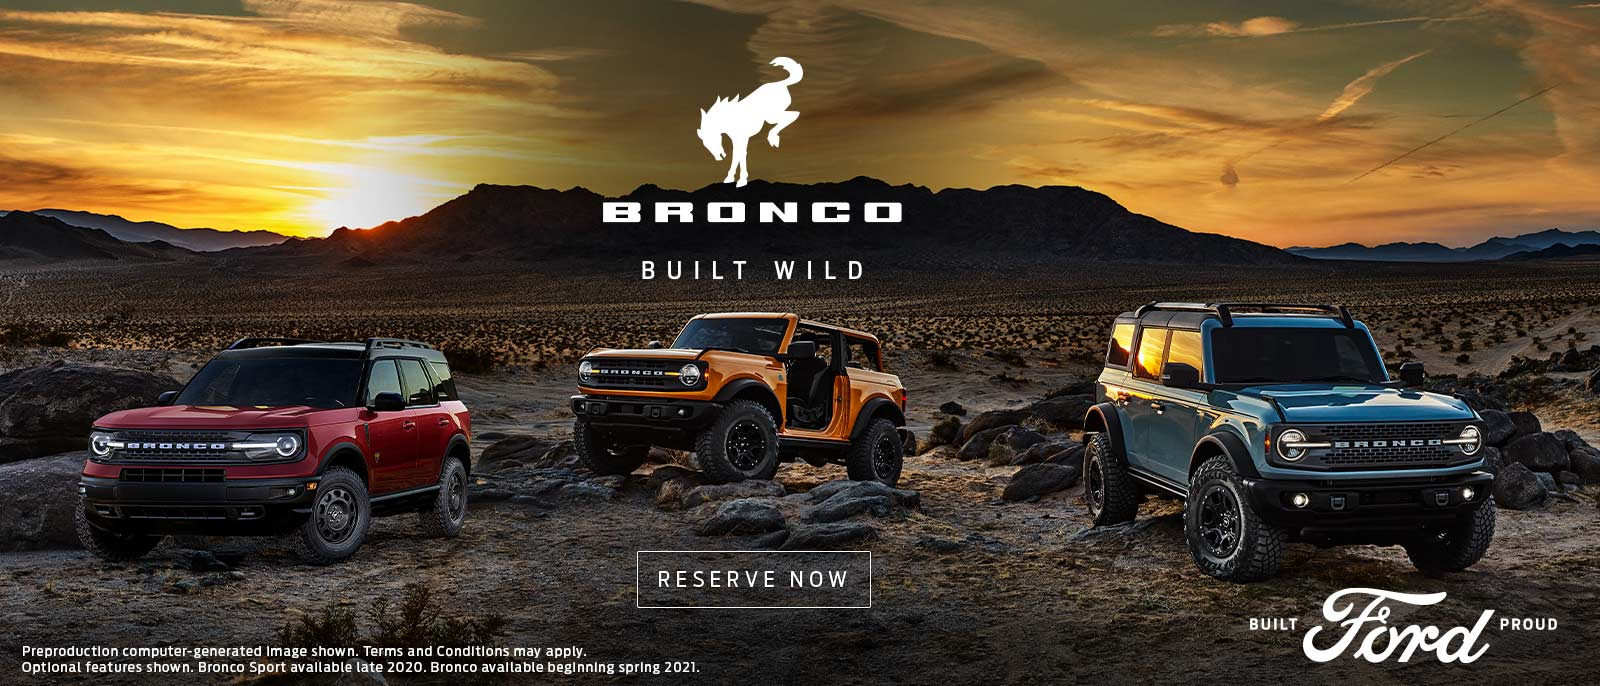 Bronco-Reveal_DealerCon_1600x686_v5.jpg